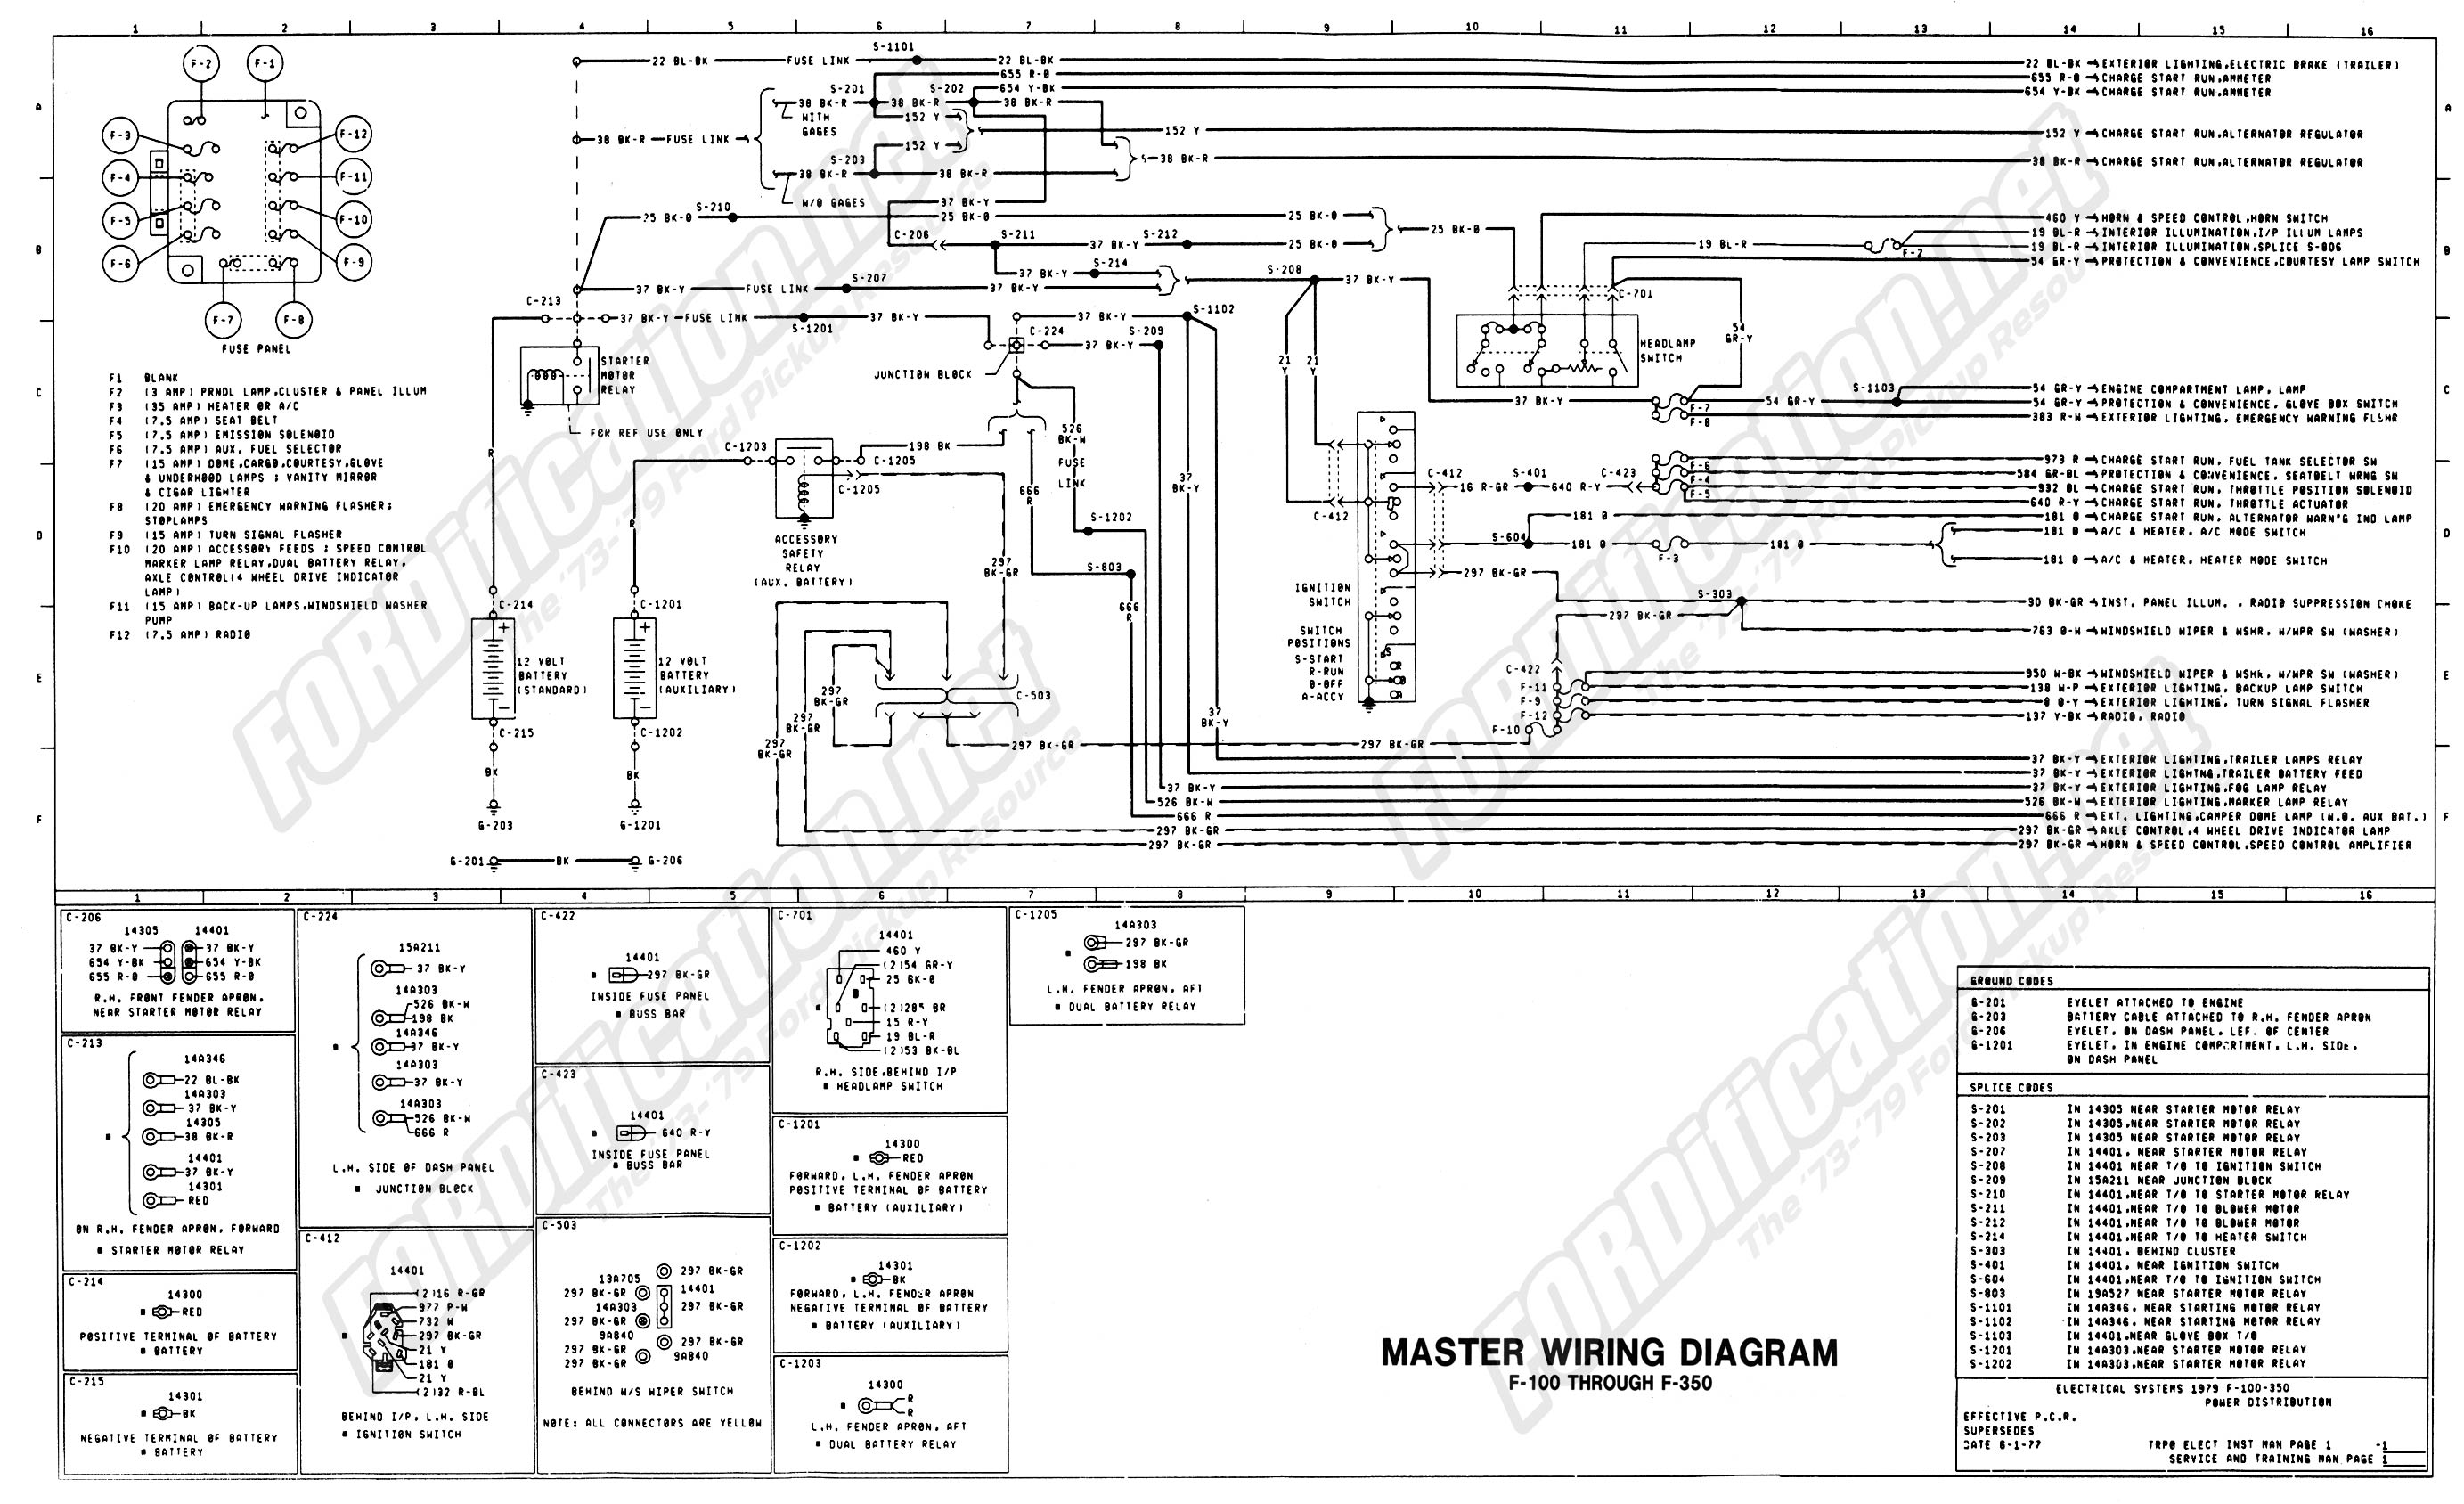 wiring_79master_1of9 1973 1979 ford truck wiring diagrams & schematics fordification net 1979 ford f100 fuse box diagram at edmiracle.co